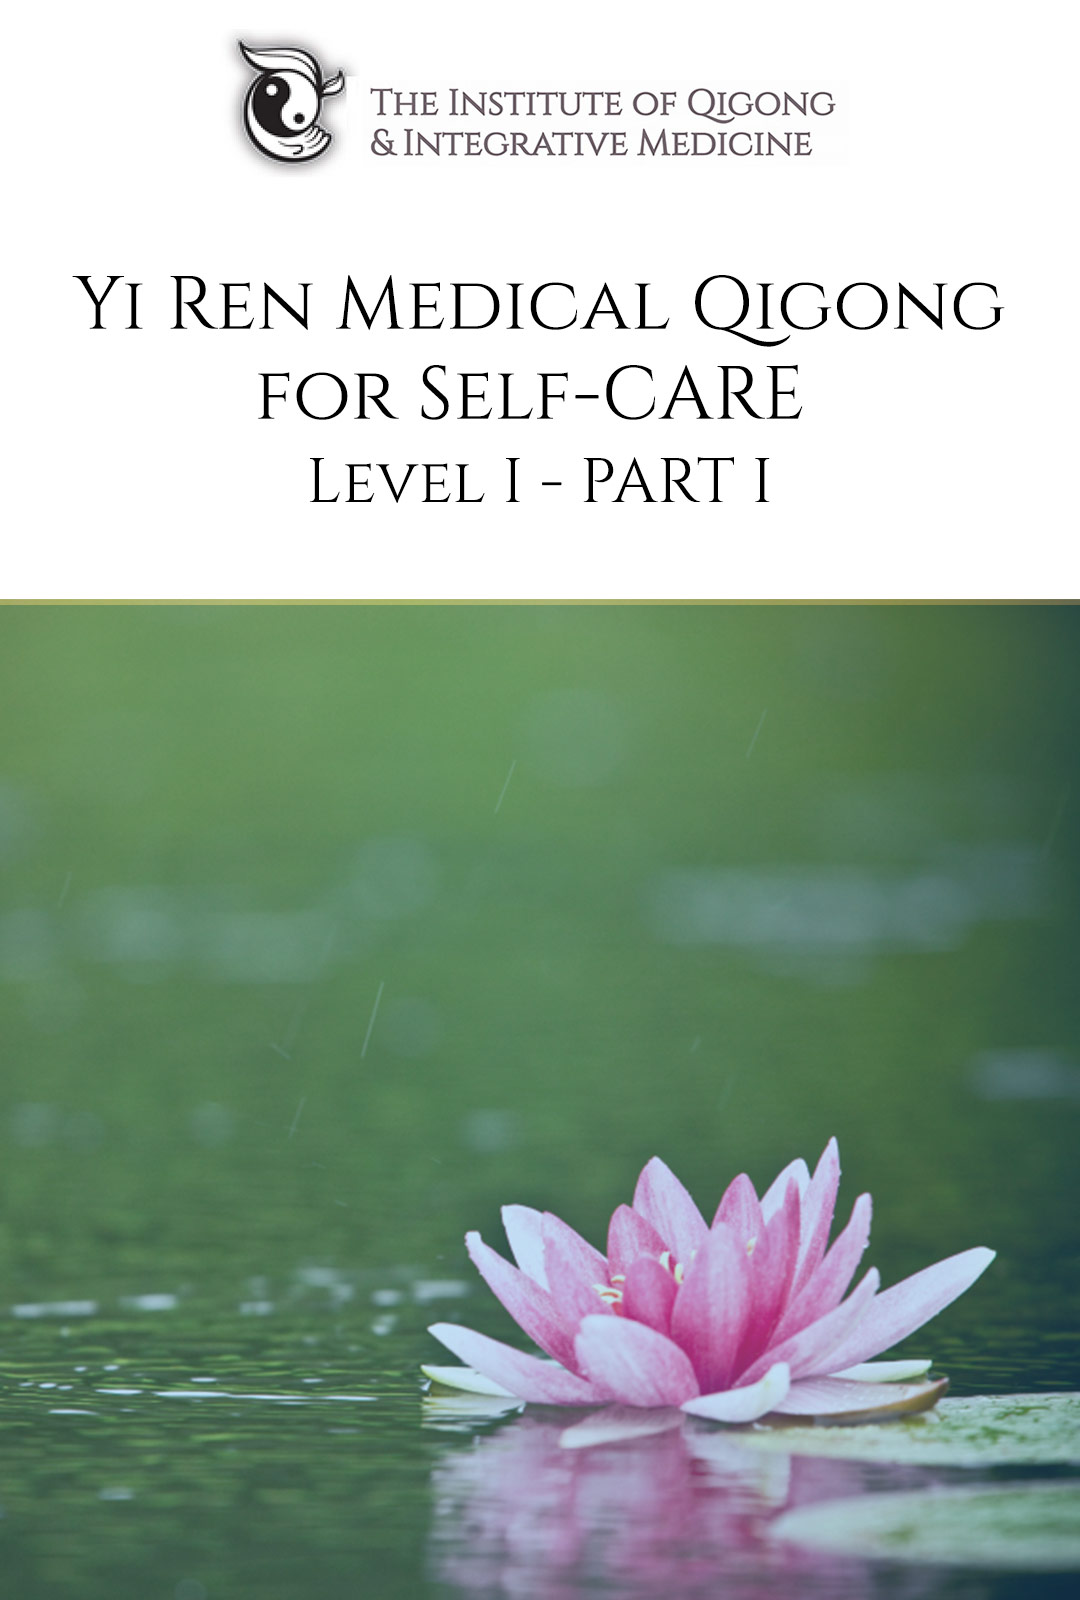 Yi Ren® Medical Qigong for Self-Care Level 1 Part 1 (Online Video)